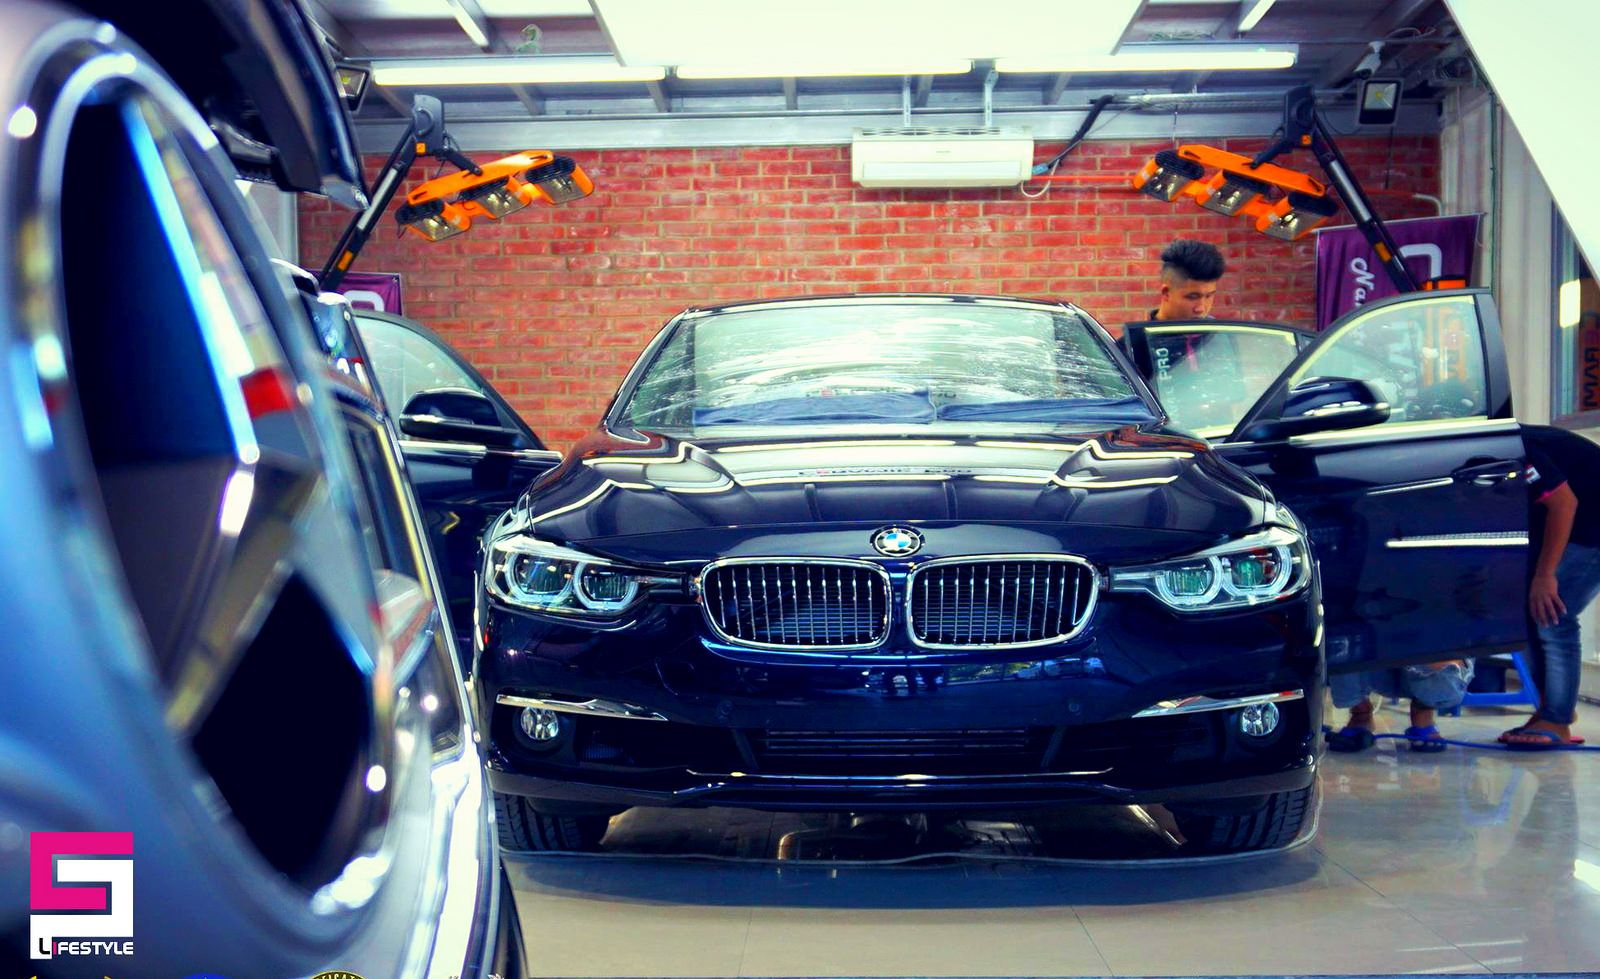 Brand New Bmw F30 Is Preparing For Application Of Ceramic Pro By Ceramic Pro Miri Bmw Paint Protection Brand